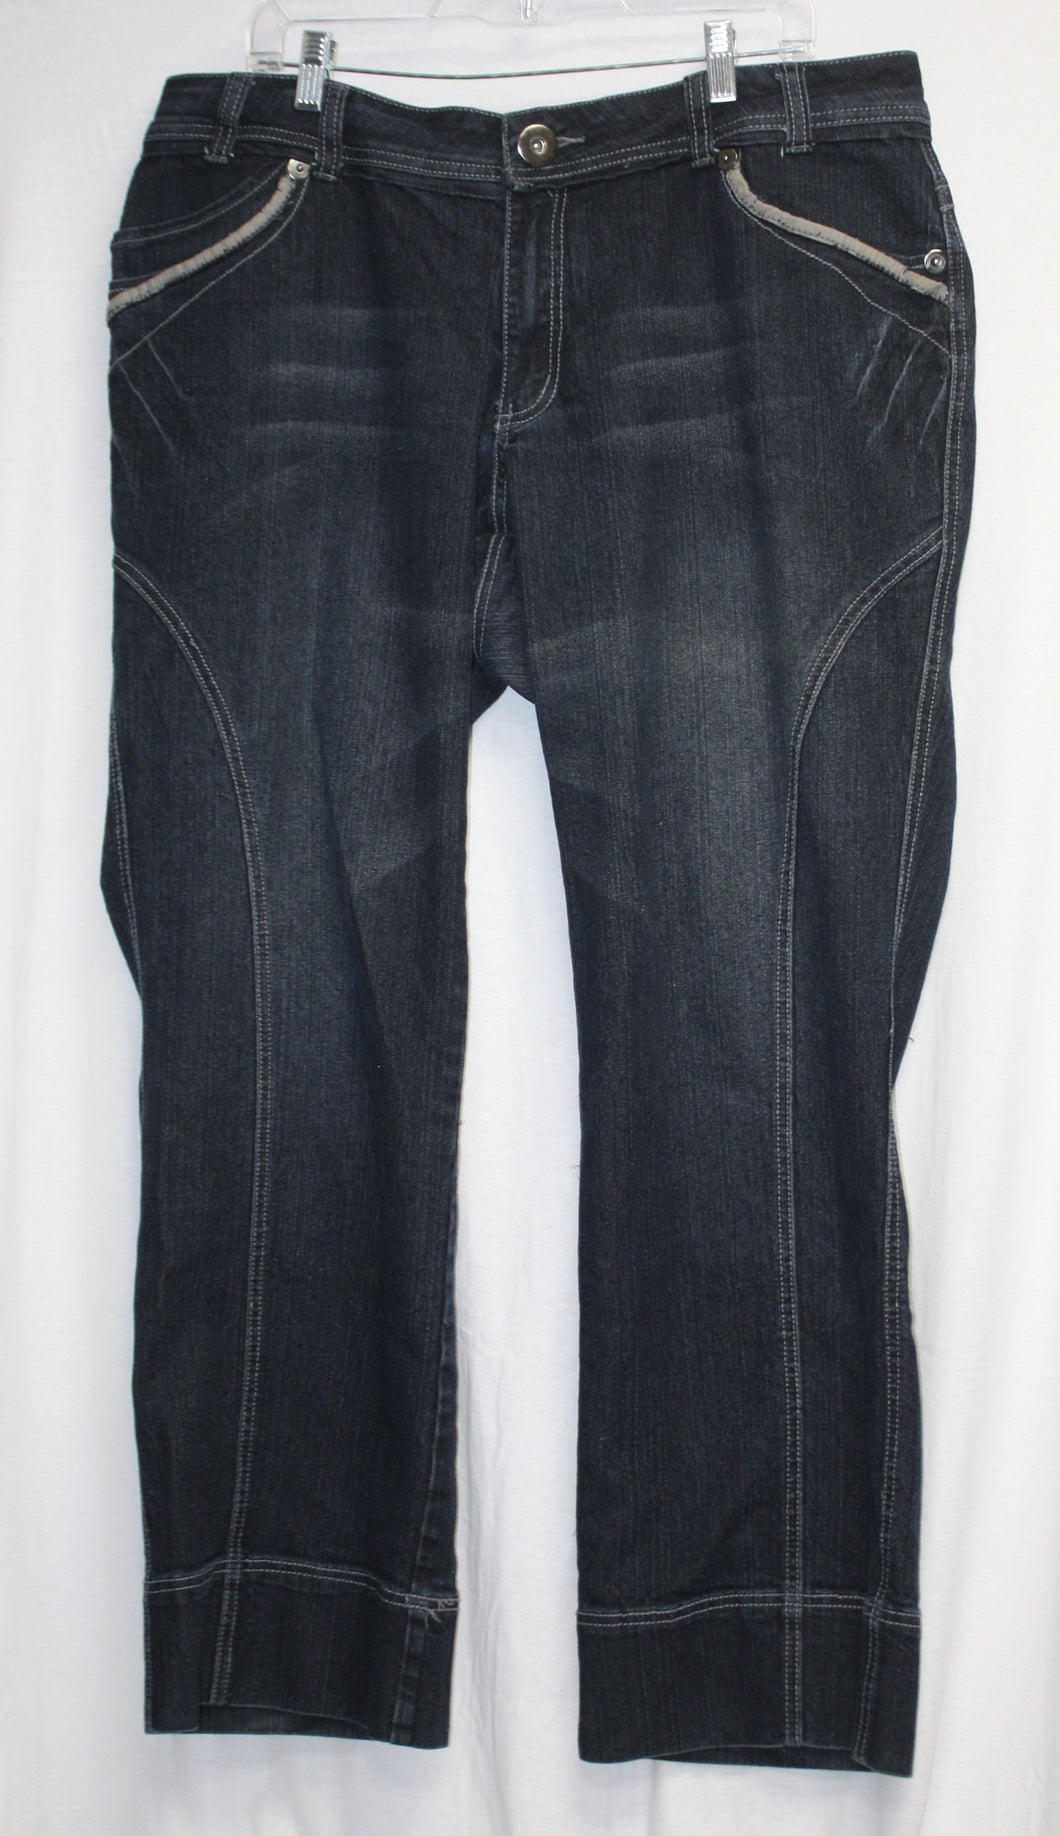 Lane Bryant Venezia Dark Blue w/ Black Overwash Jeans Size 20